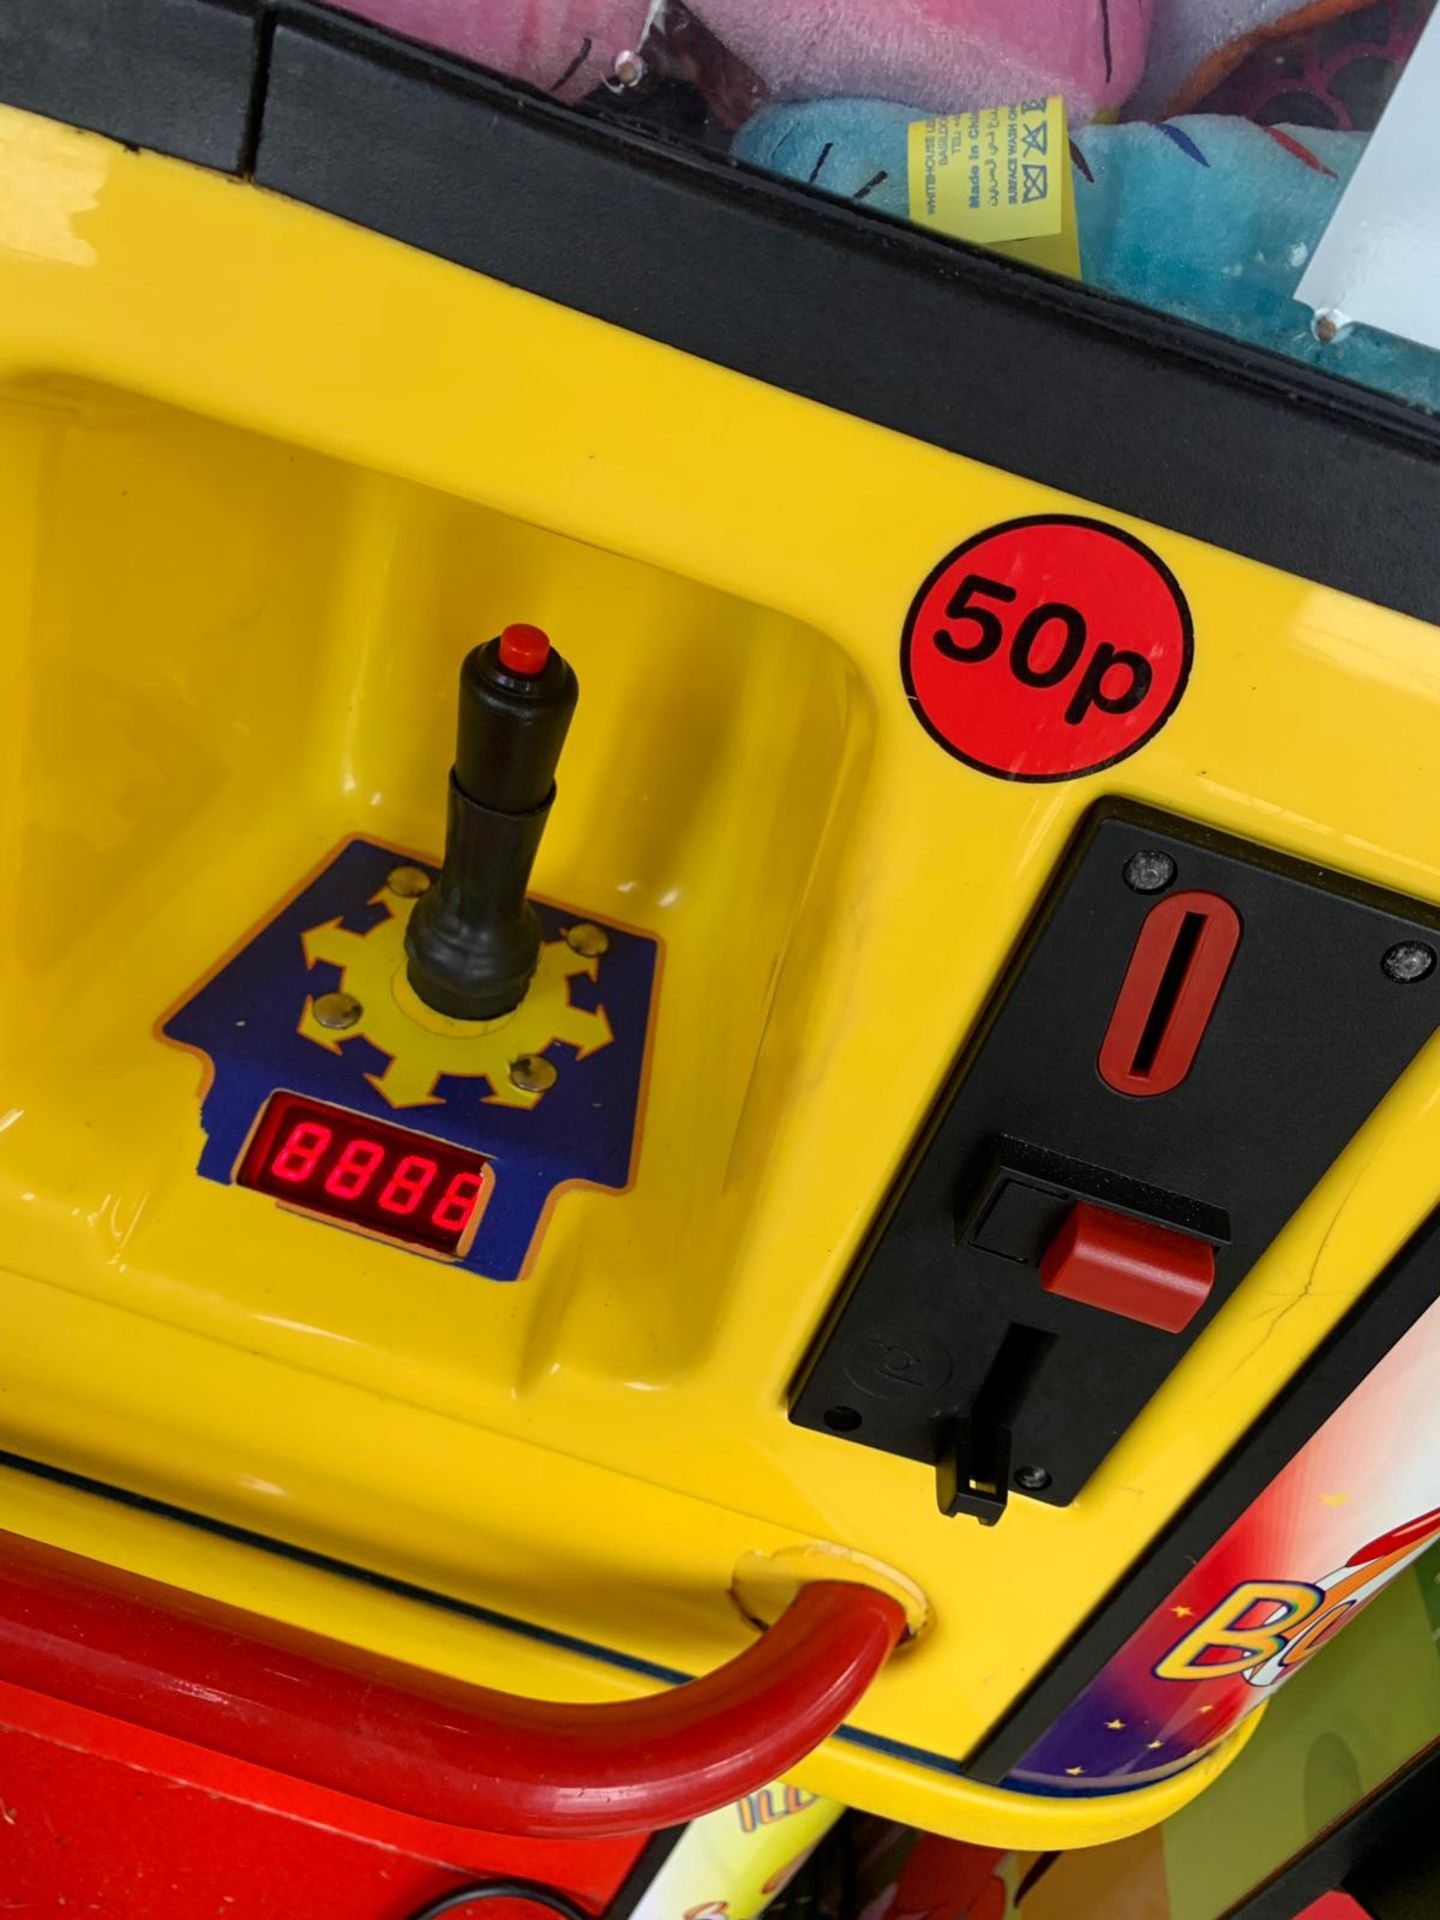 Buy Illusion Arcade Claw Machine, In Working Order *Plus Vat* - Image 3 of 6